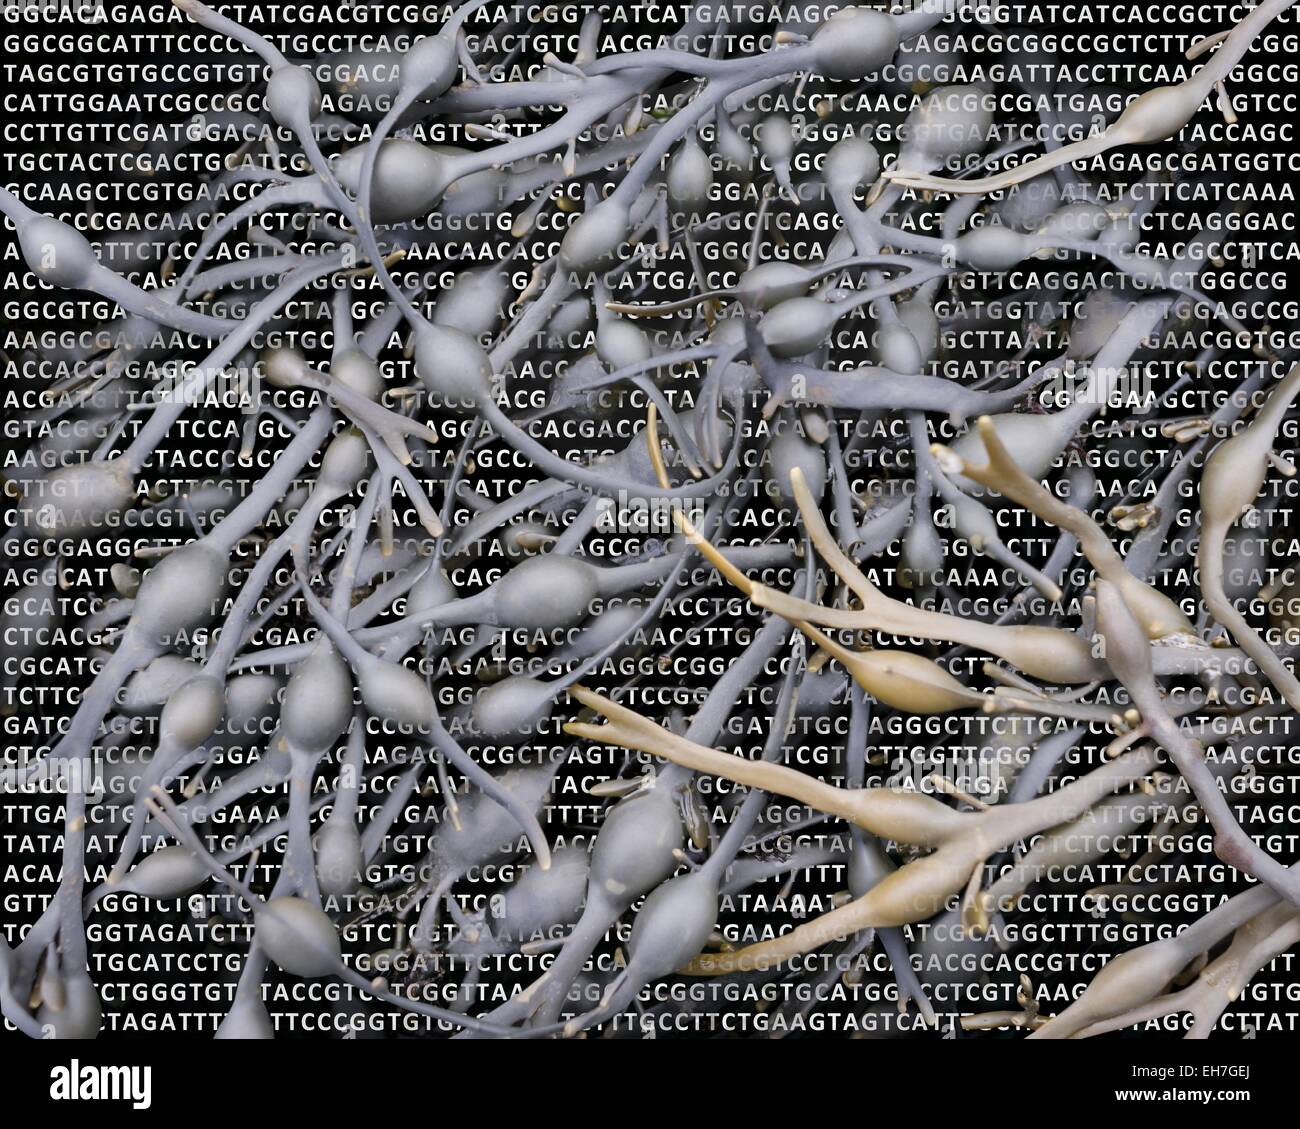 Seaweed and its DNA - Stock Image